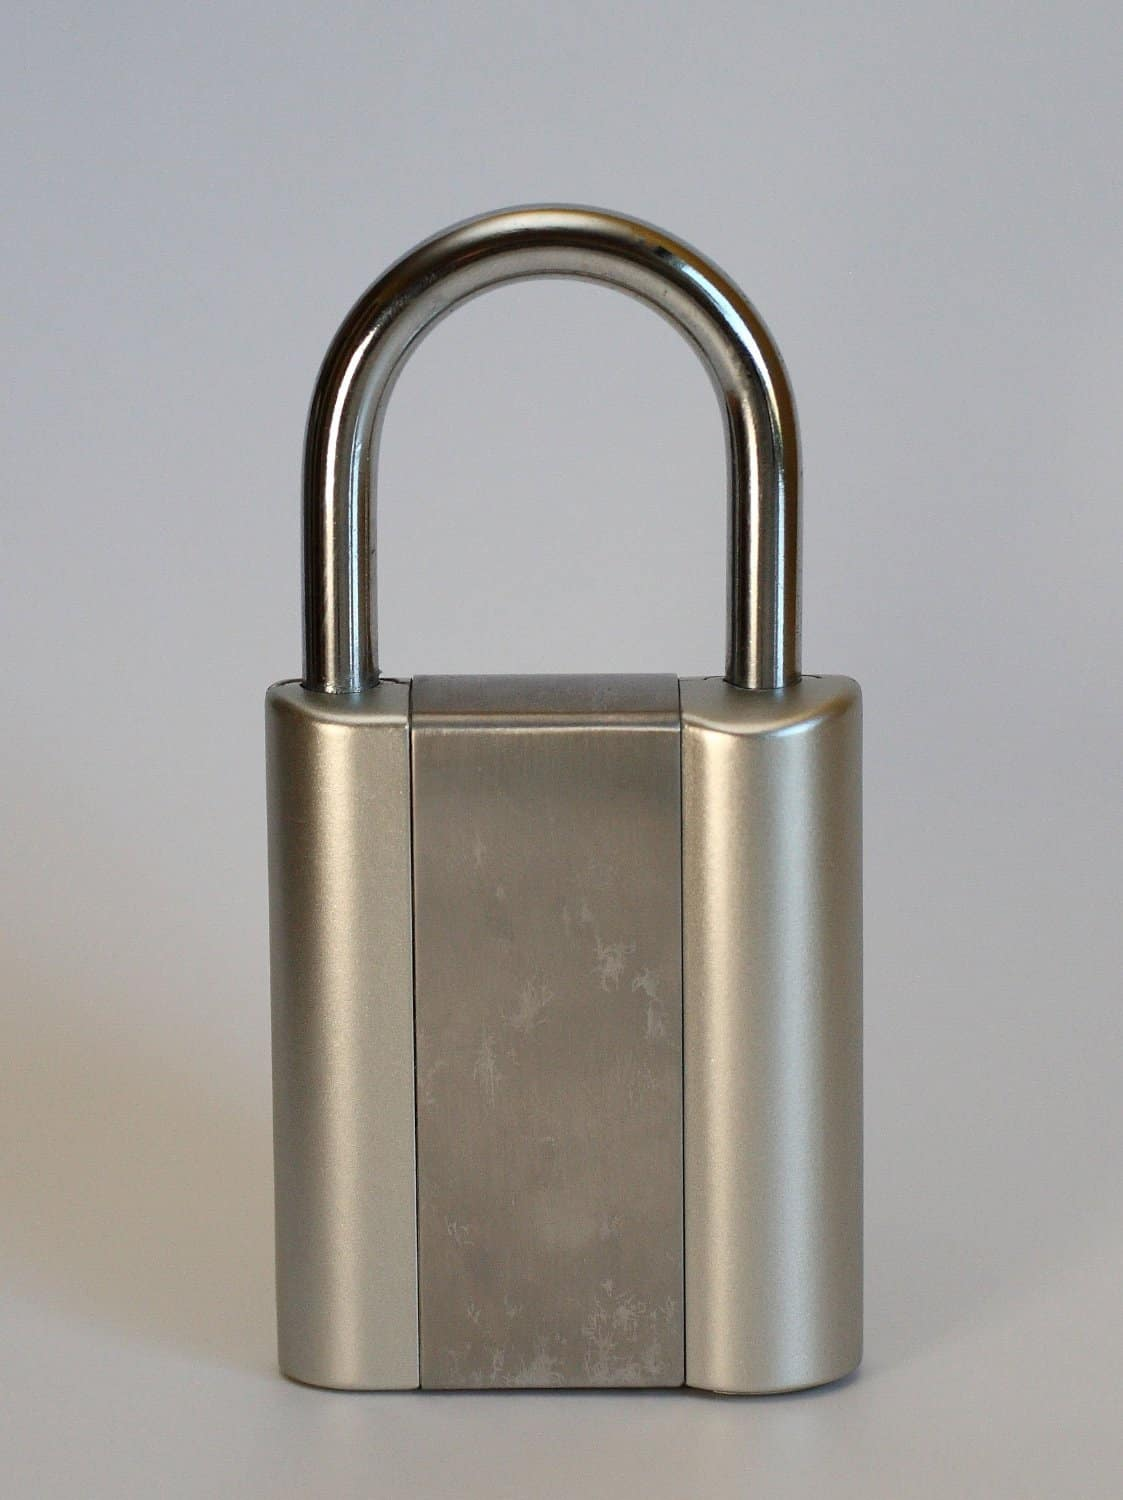 iFingerLock Fingerprint Biometric Padlock for Multiple People